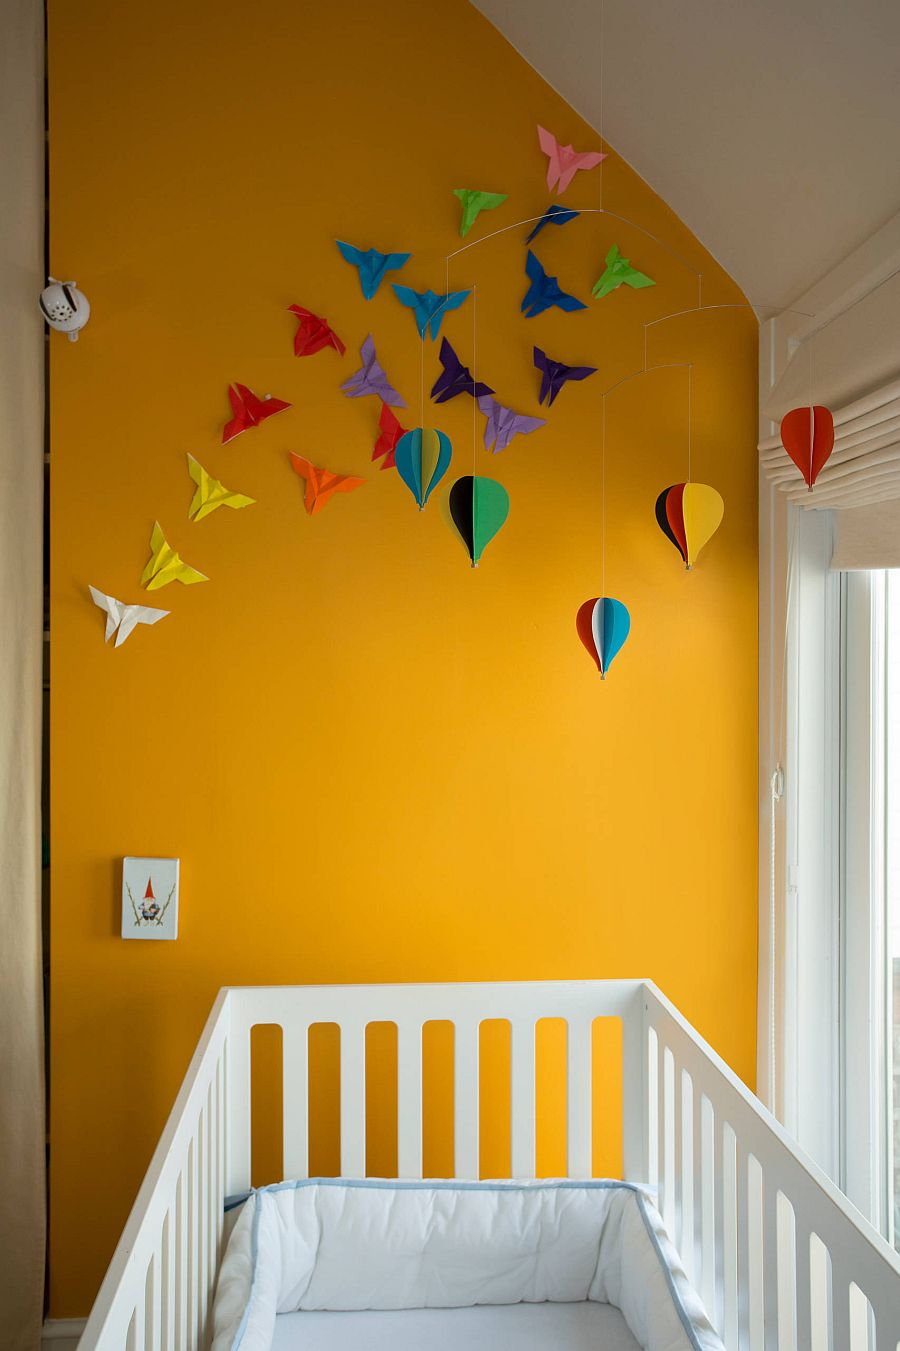 Decorating-the-orange-accent-wall-in-modern-nursery-34498